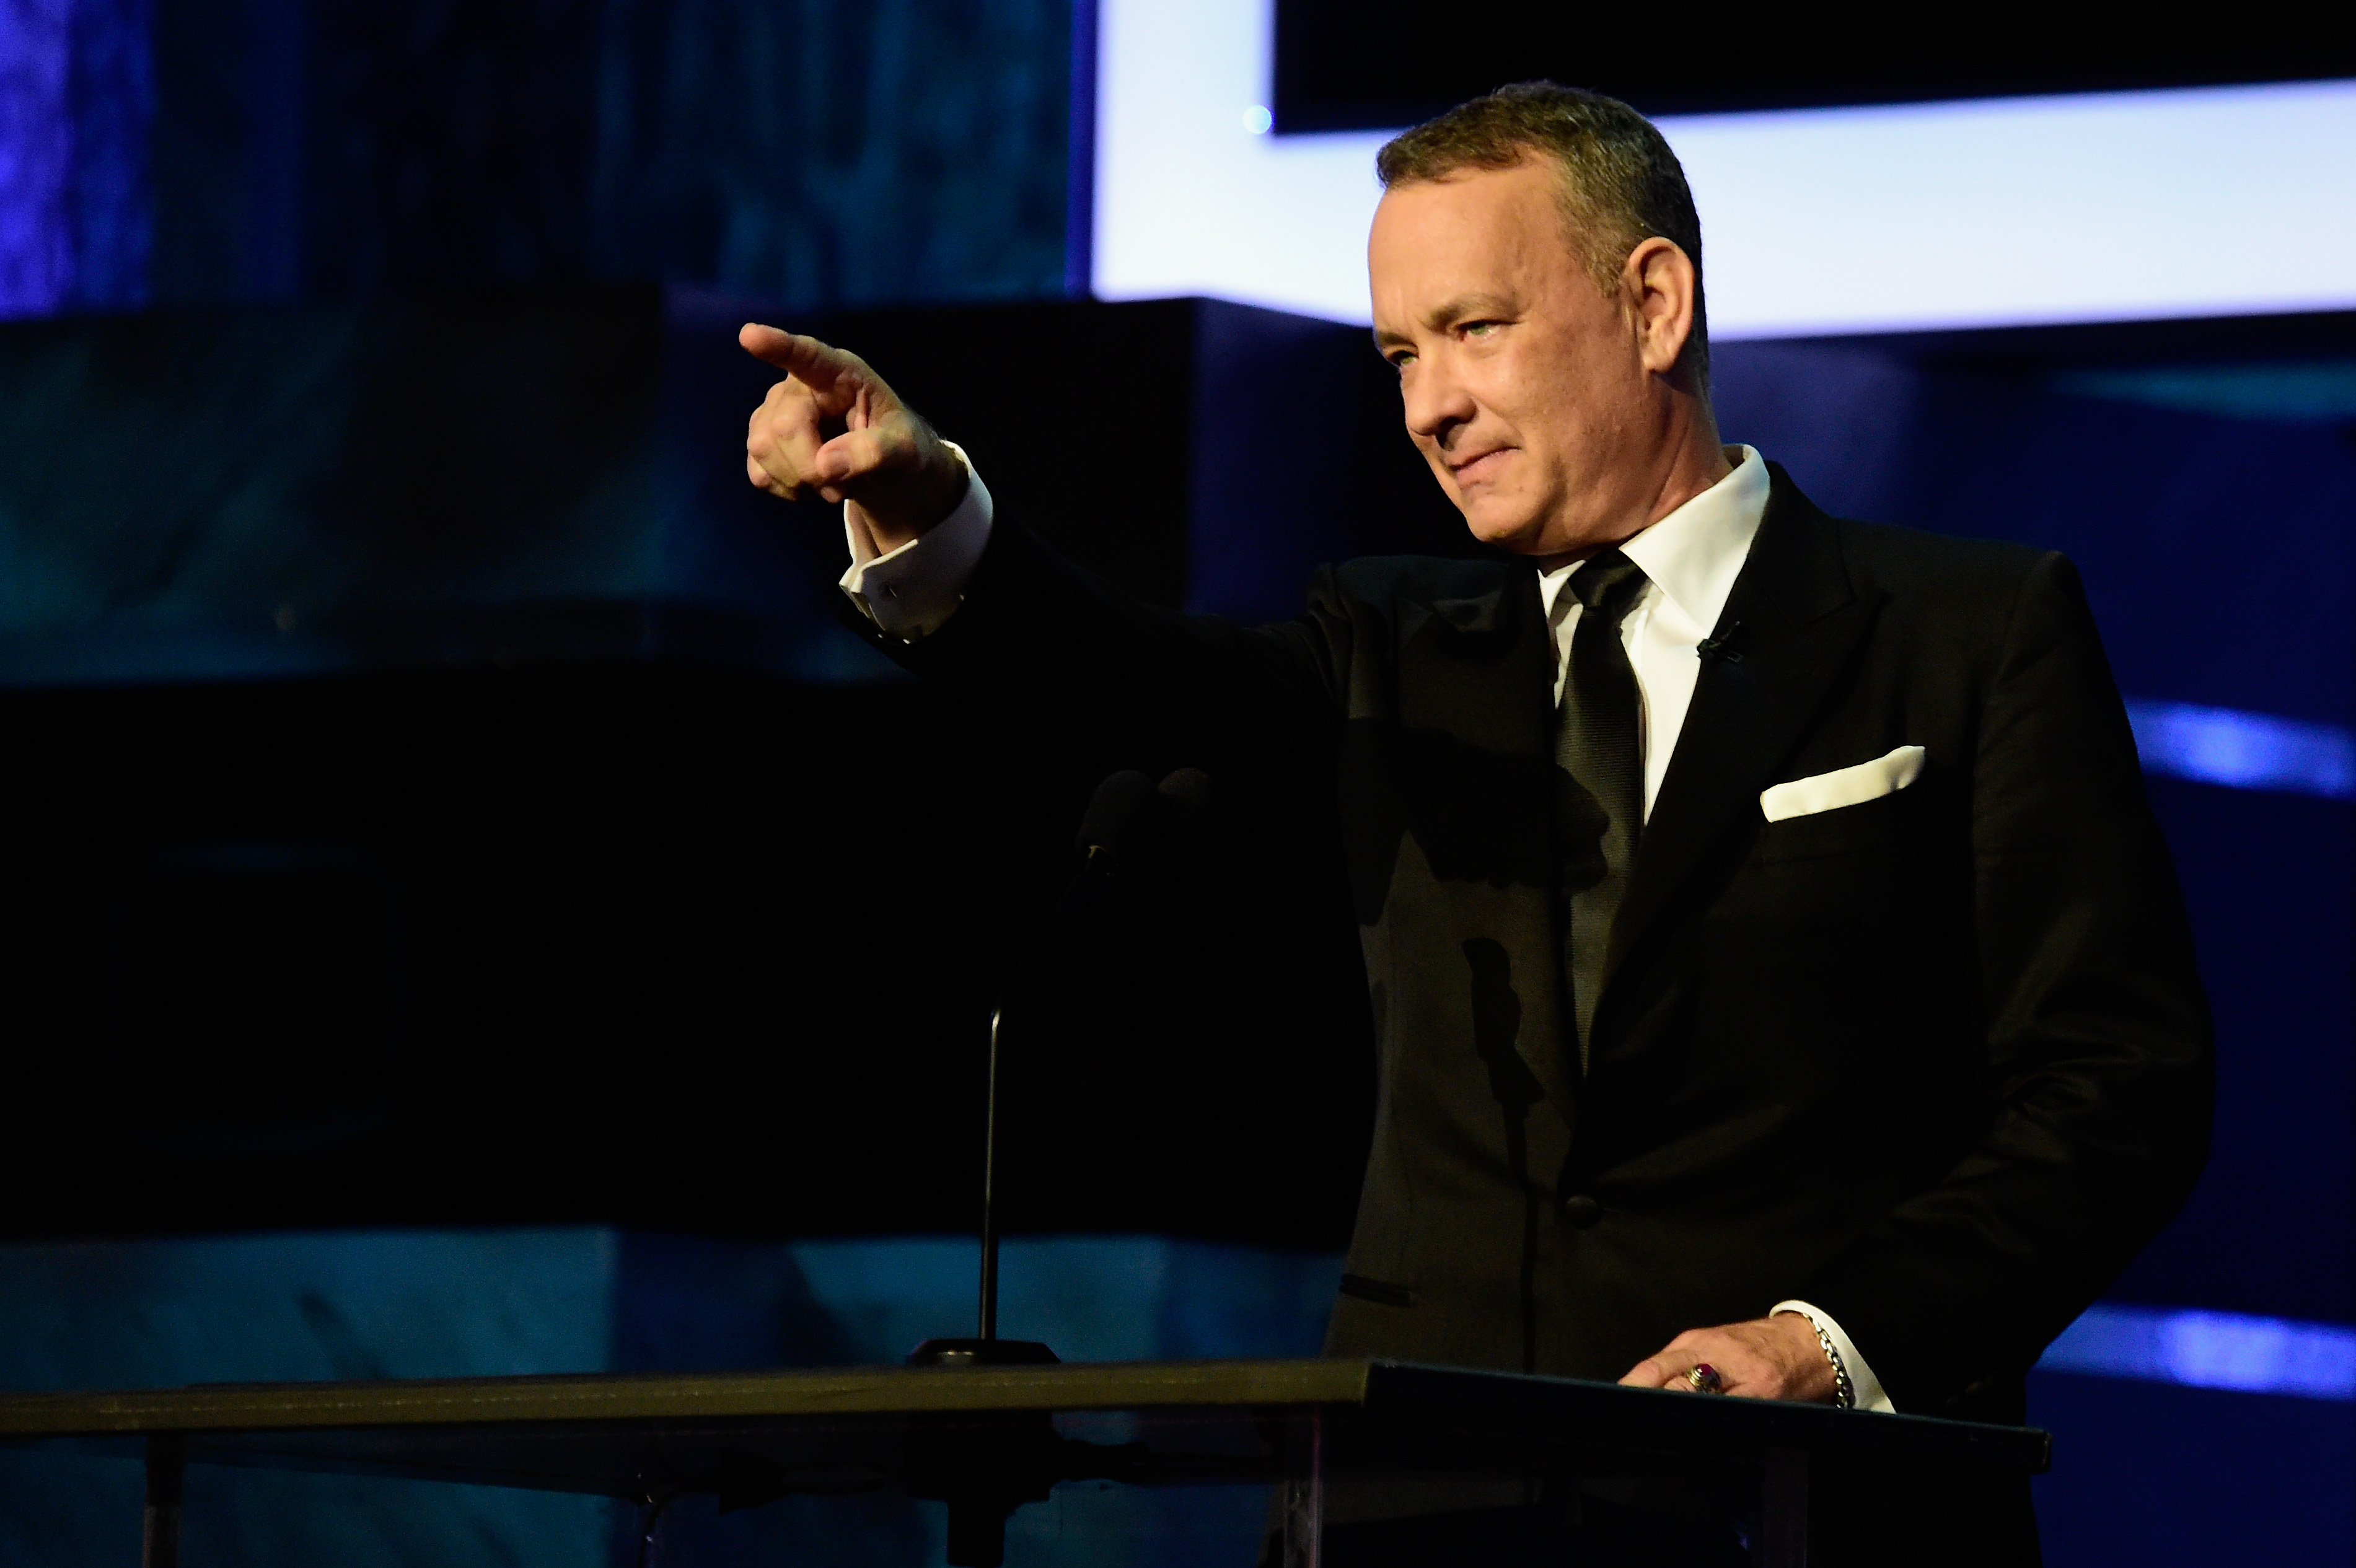 Actor Tom Hanks onstage during American Film Institute's 44th Life Achievement Award Gala Tribute show to John Williams at Dolby Theatre